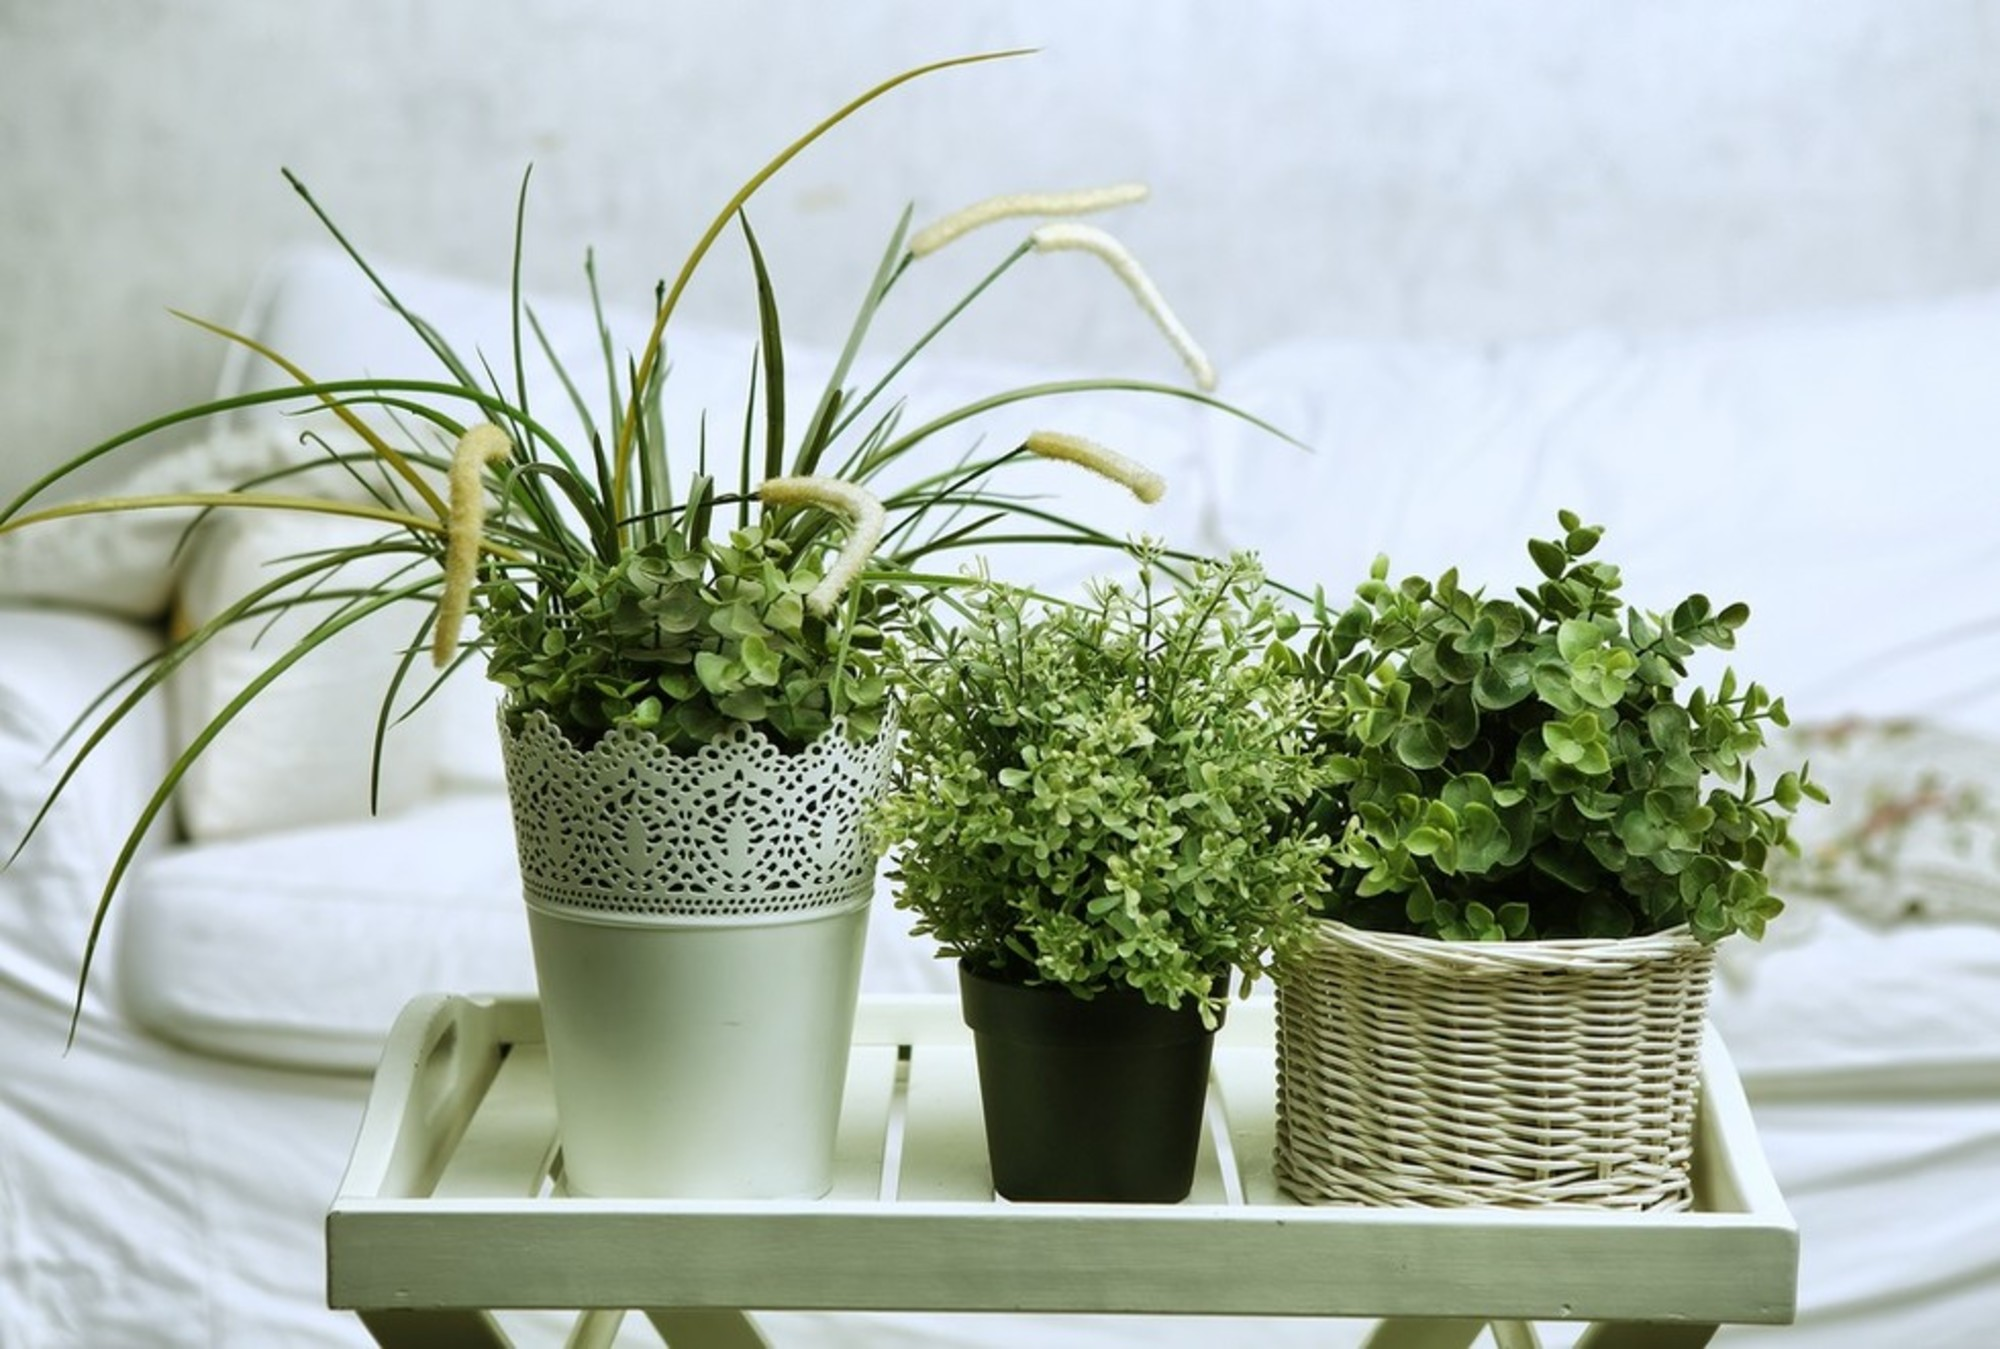 can-we-keep-plants-in-bedroom-house-plants-for-healthy-air-5-plants-for-bedroom-snake-plant-indoor-bedroom-plants-oxygen-at-night.jpg